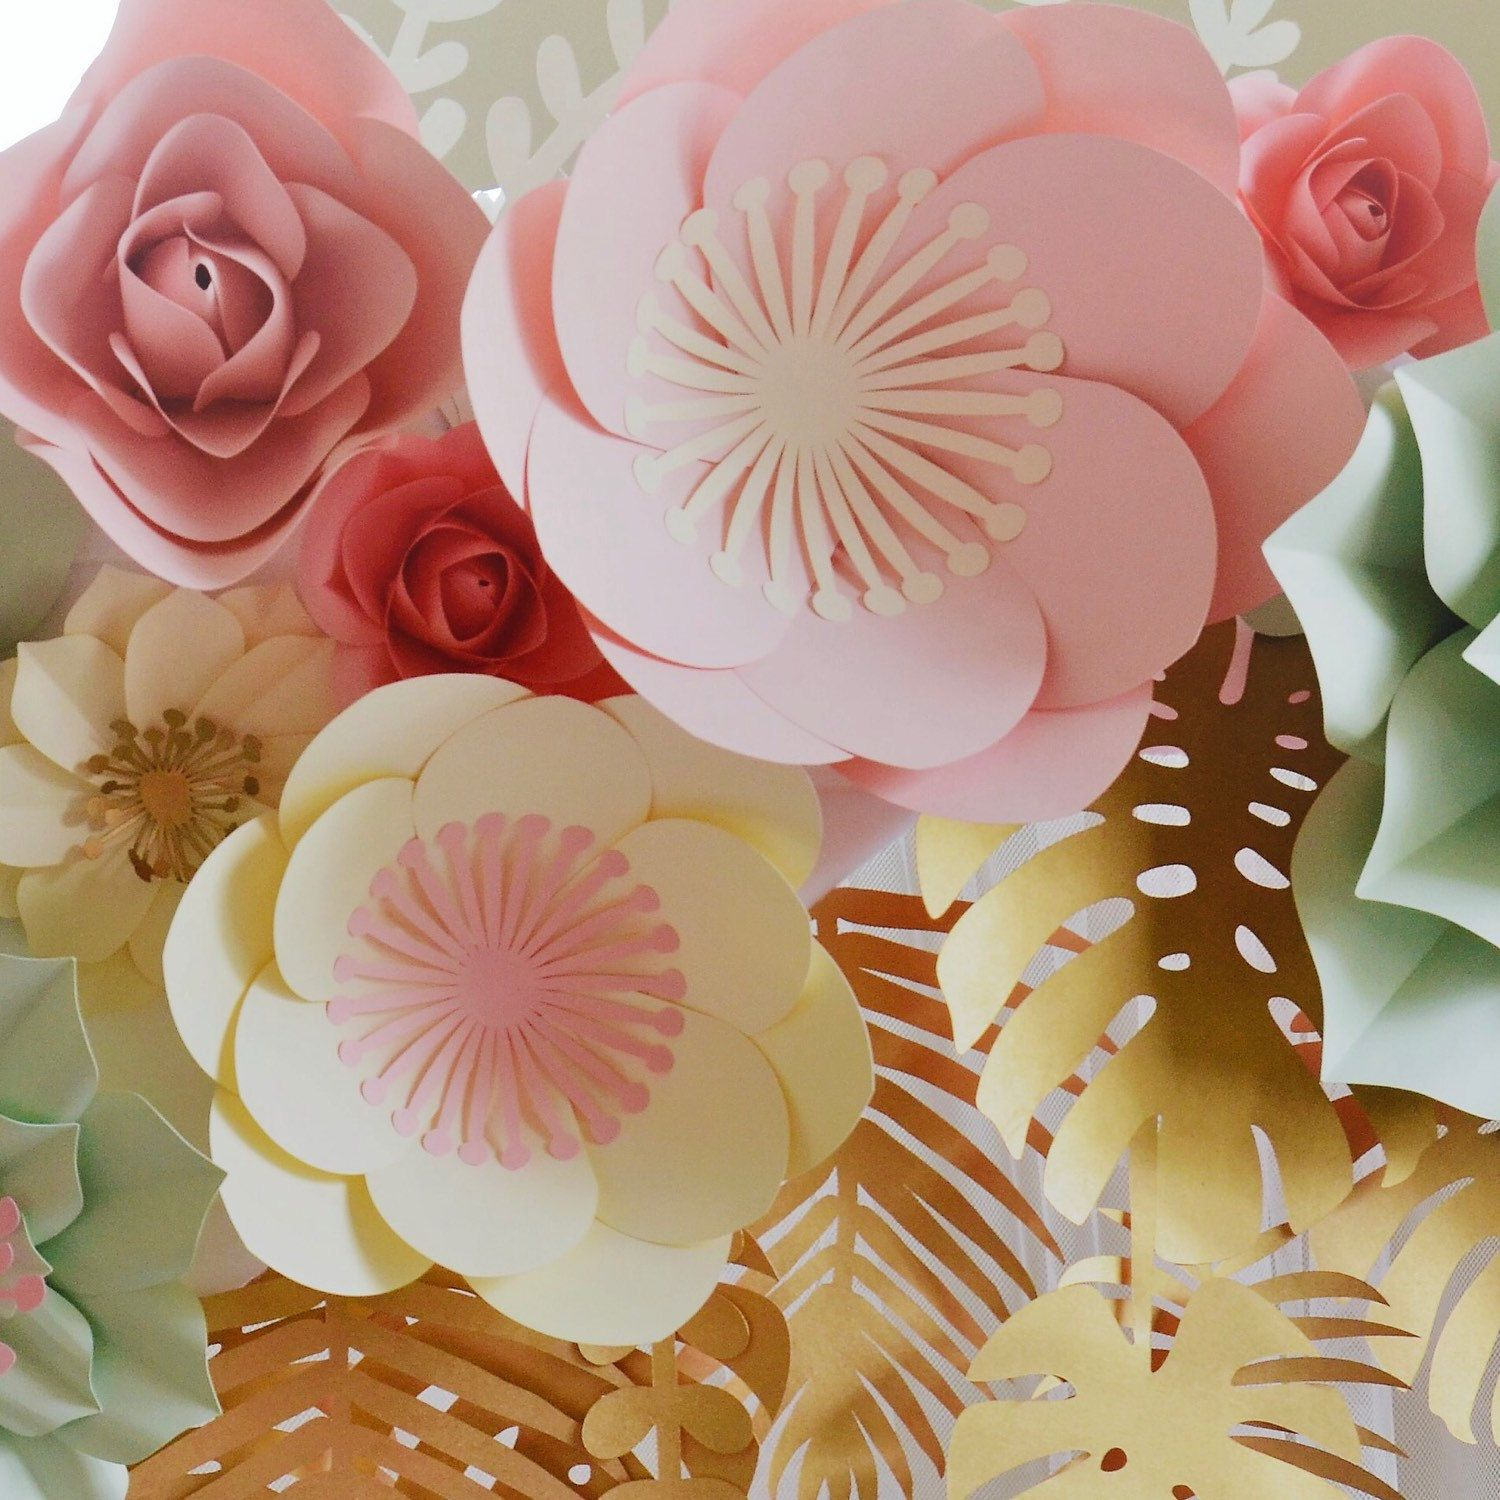 Sale Only 30 Cents Gorgeous Paper Flower Diy Giant